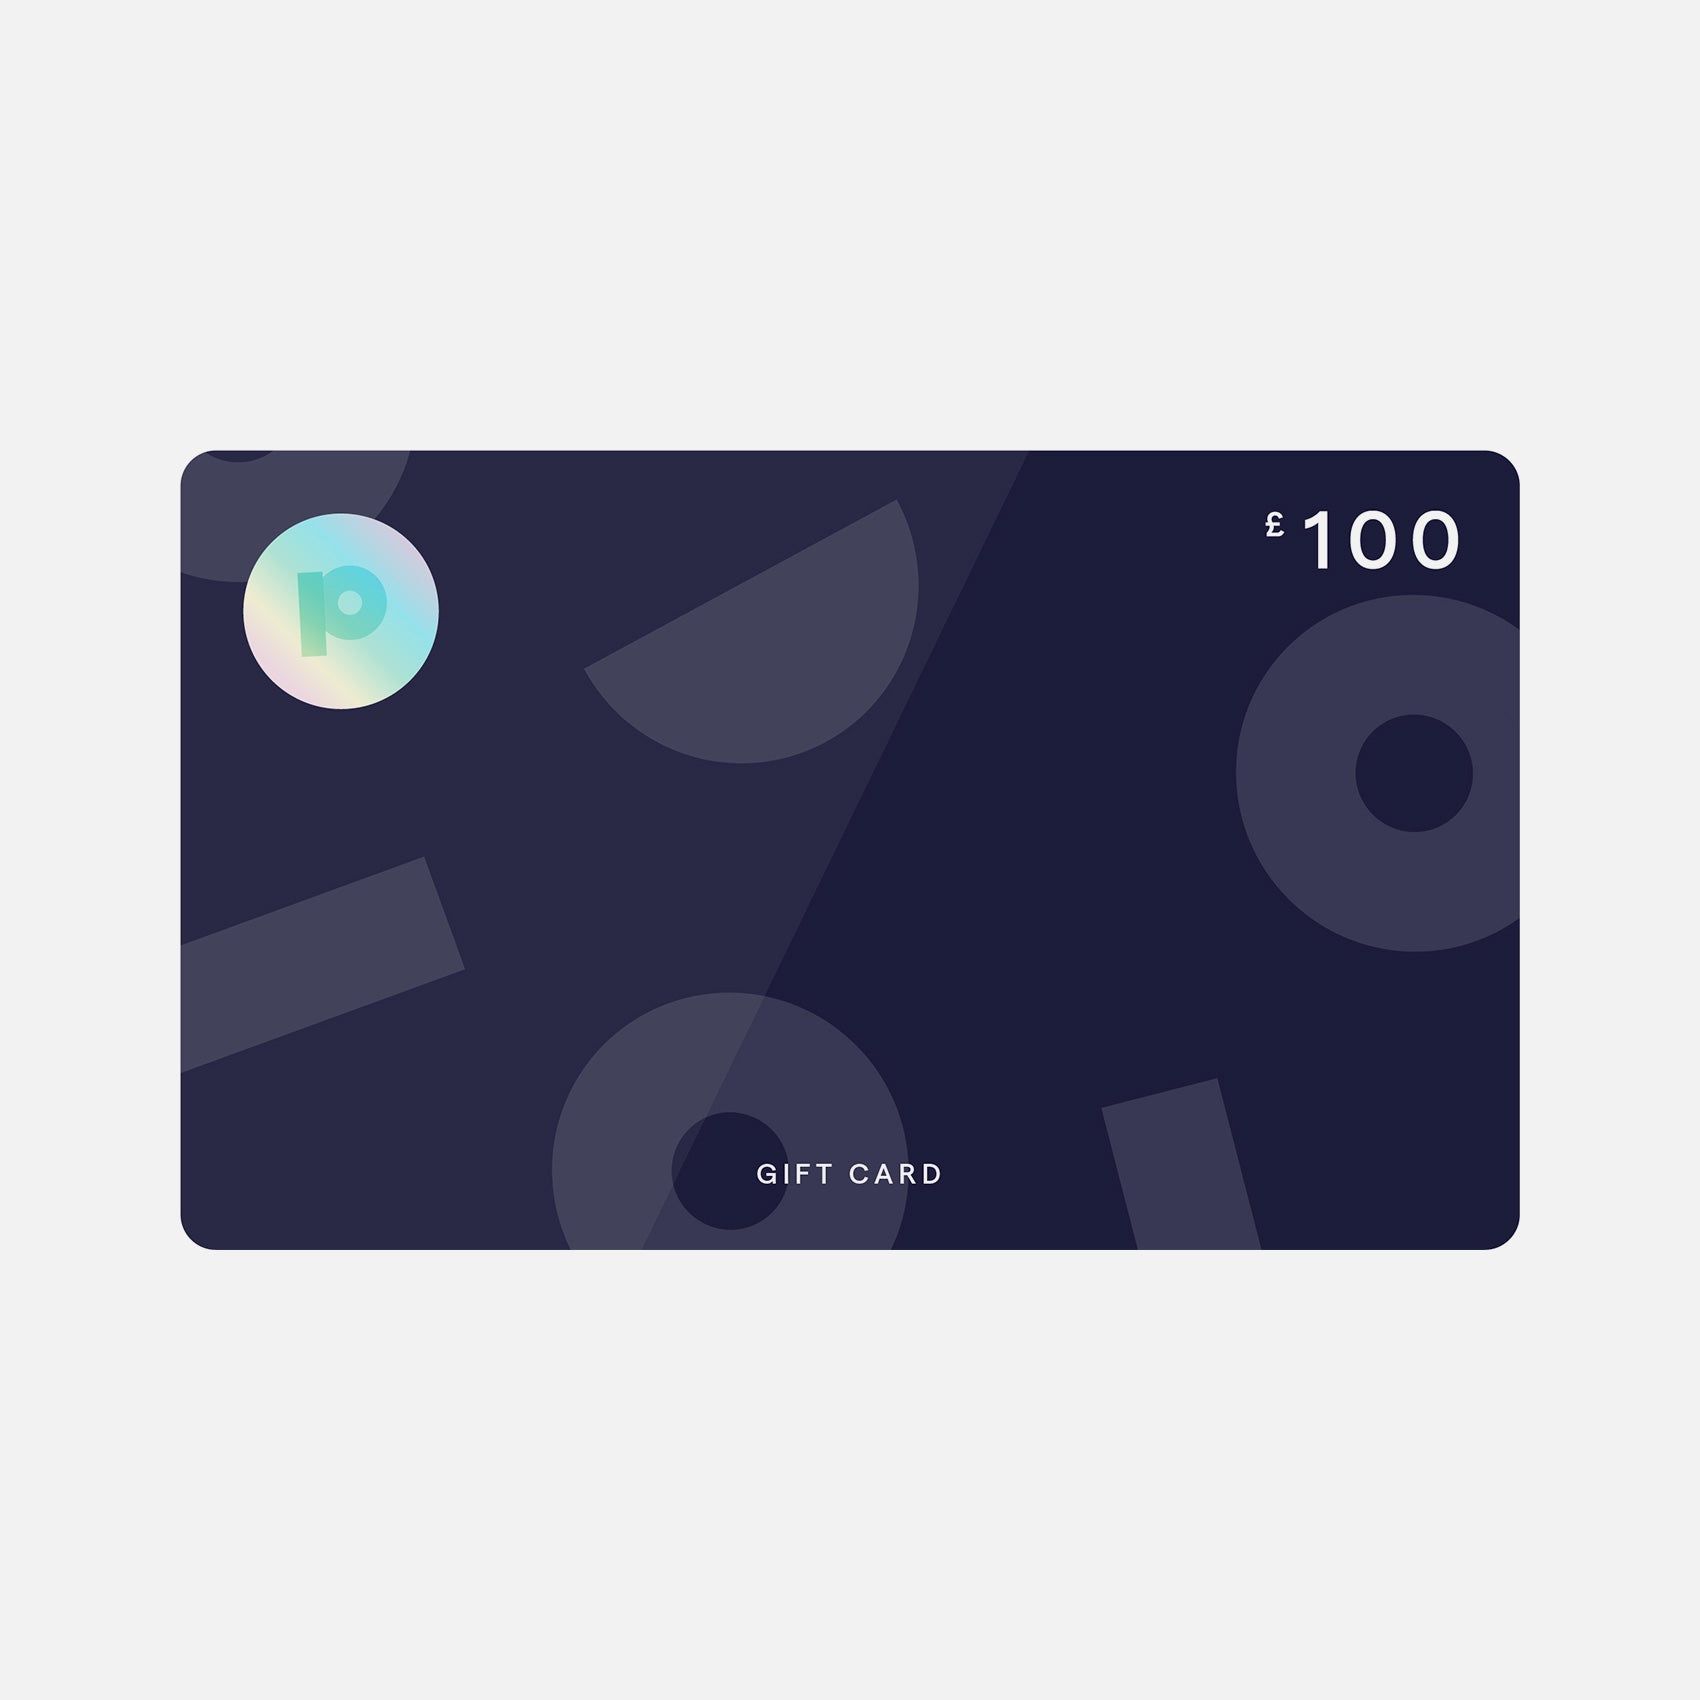 Gift card from Pea £100